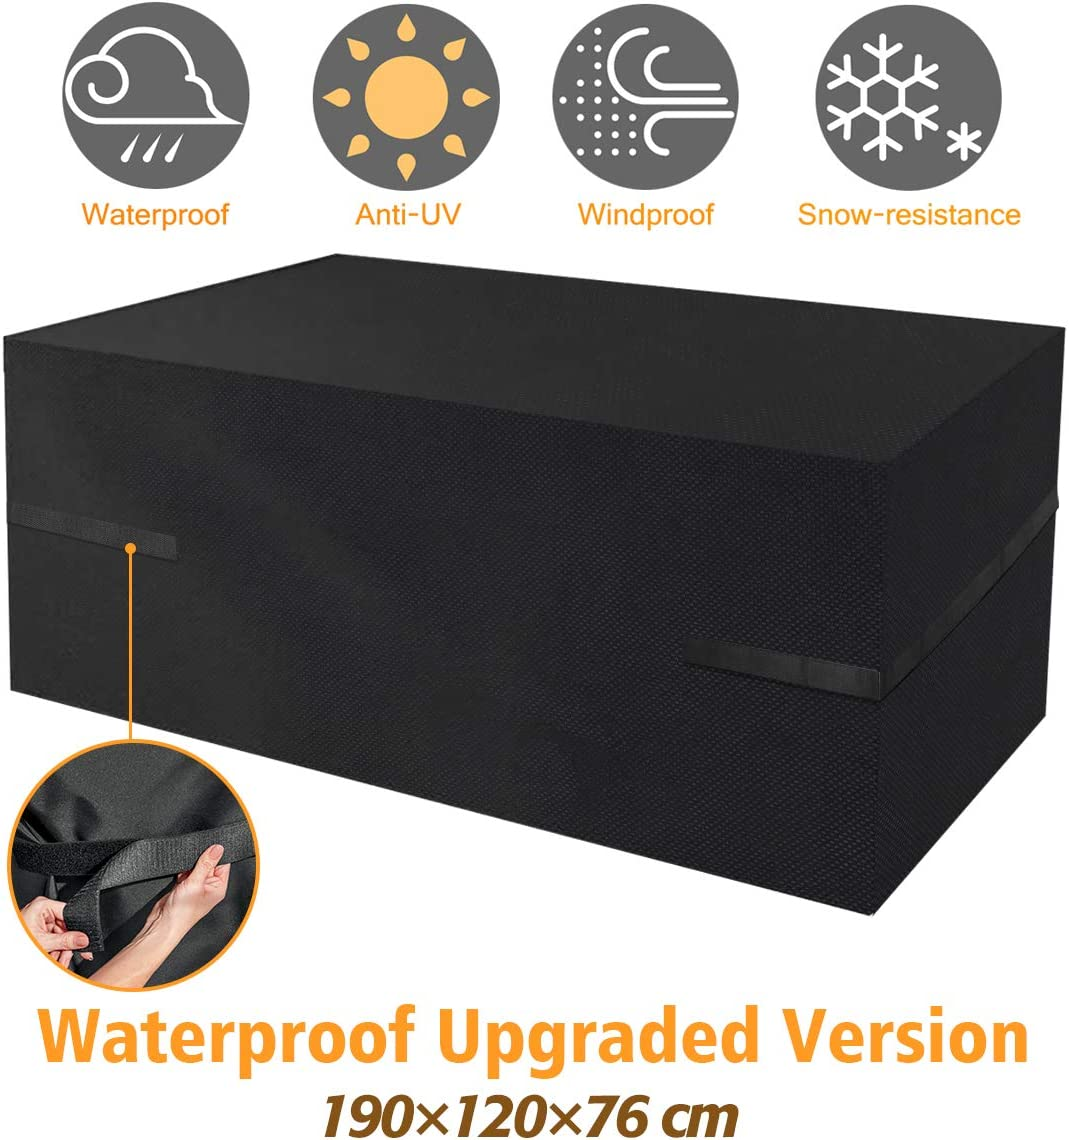 Tvird Funda Muebles Jardin Impermeable, Funda Muebles Exterior Impermeable 600D Oxford,Anti-UV, Resitente al Polvo, 190×120×74 cm -Negro